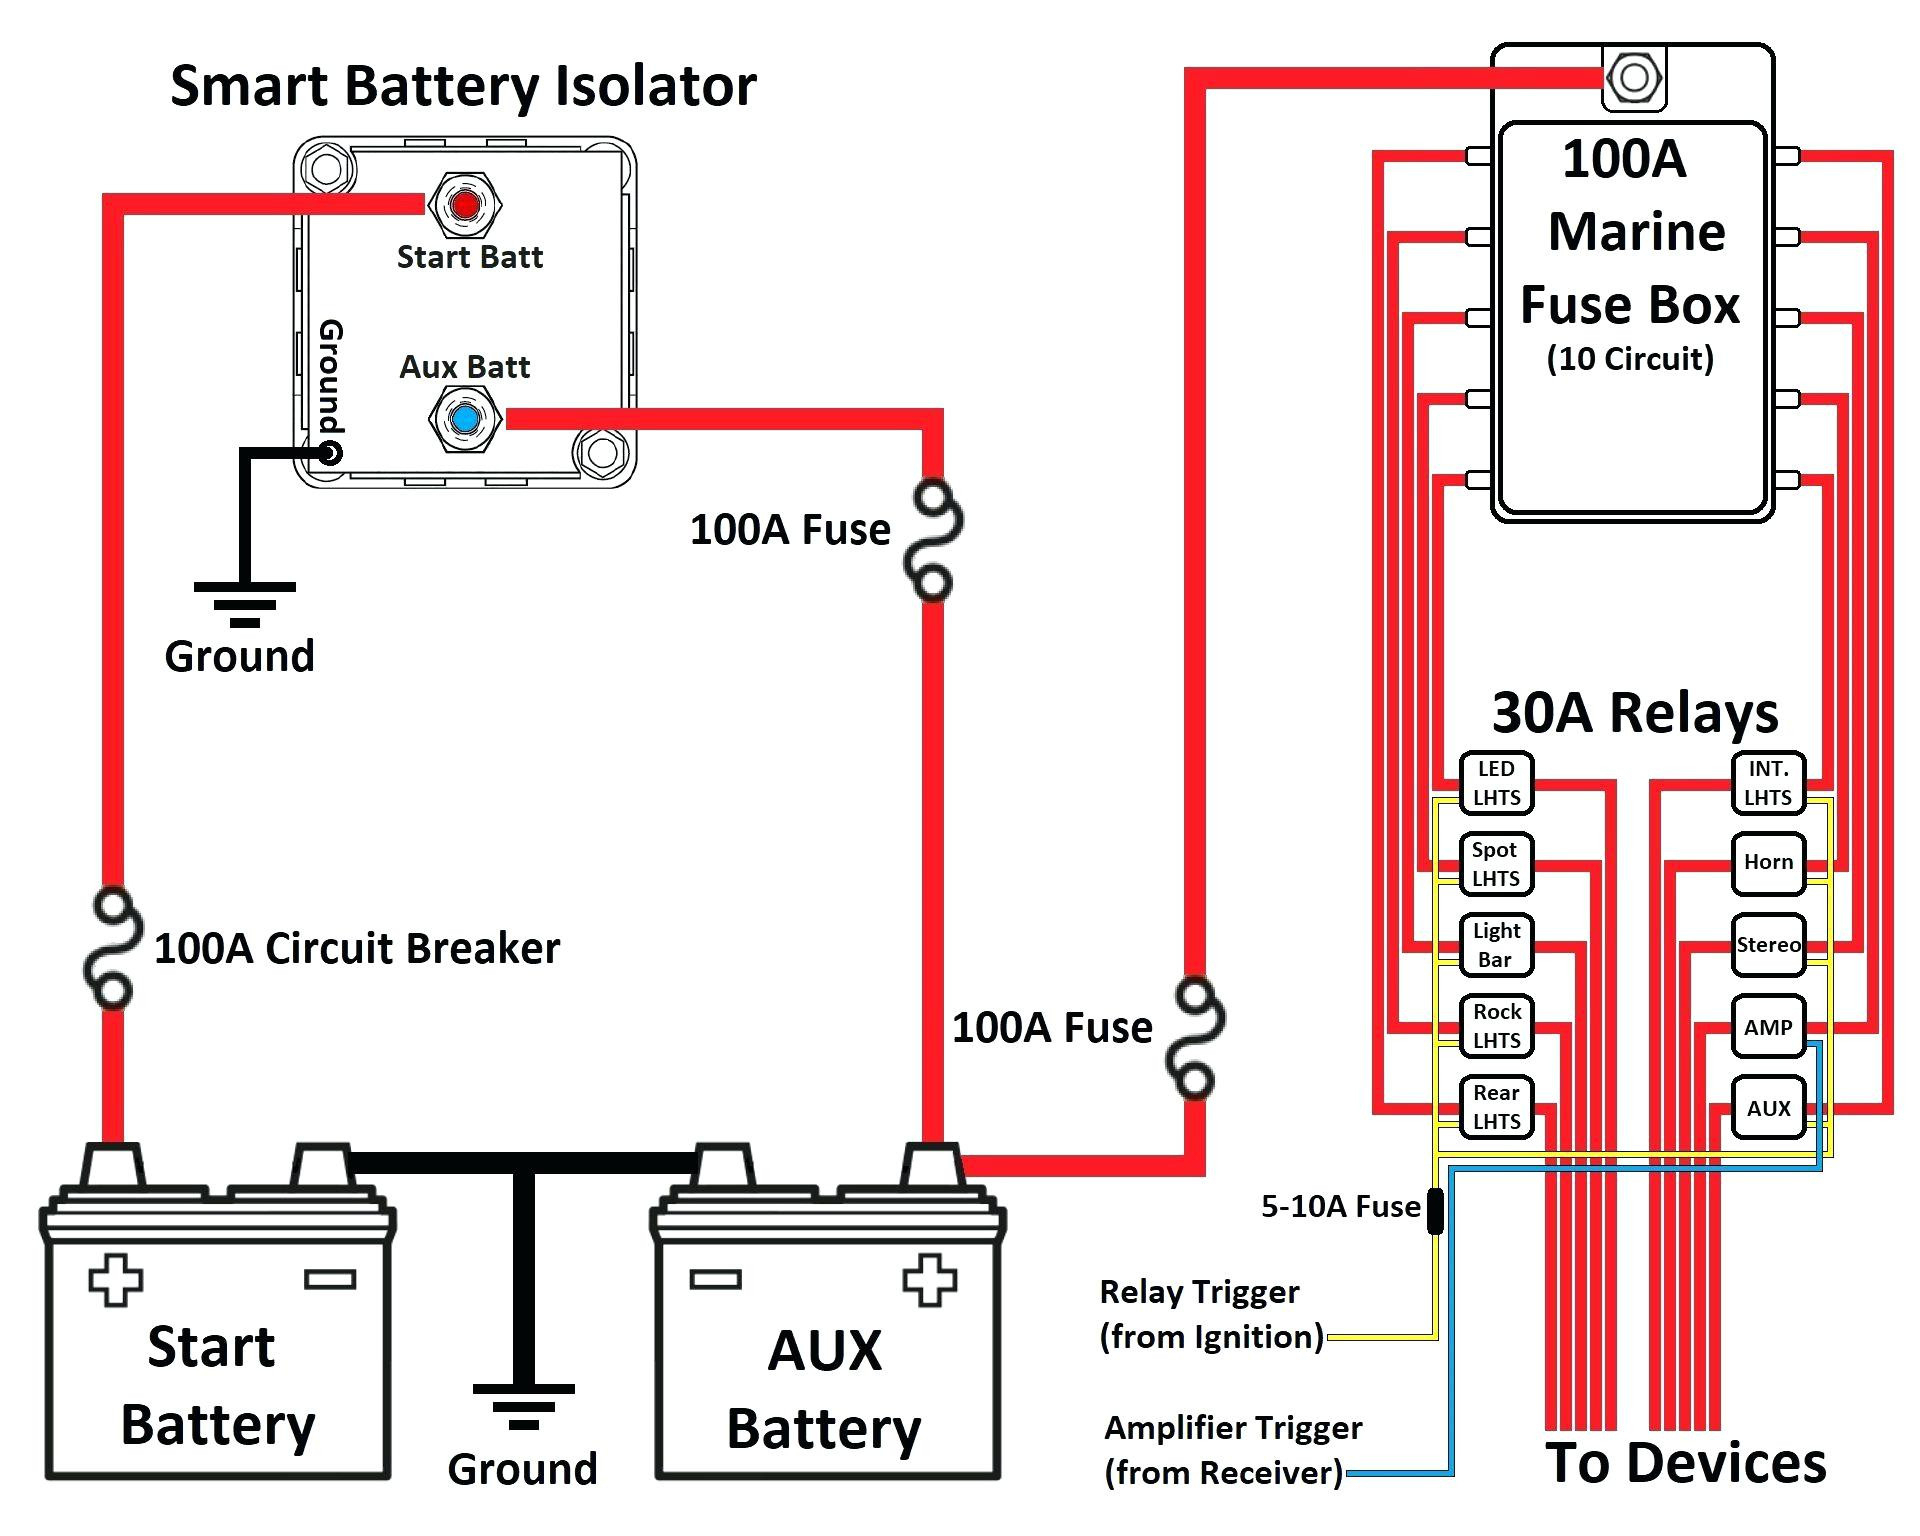 Wiring Diagram Typical Battery Isolator Circuits Single - Today - Travel Trailer Battery Wiring Diagram